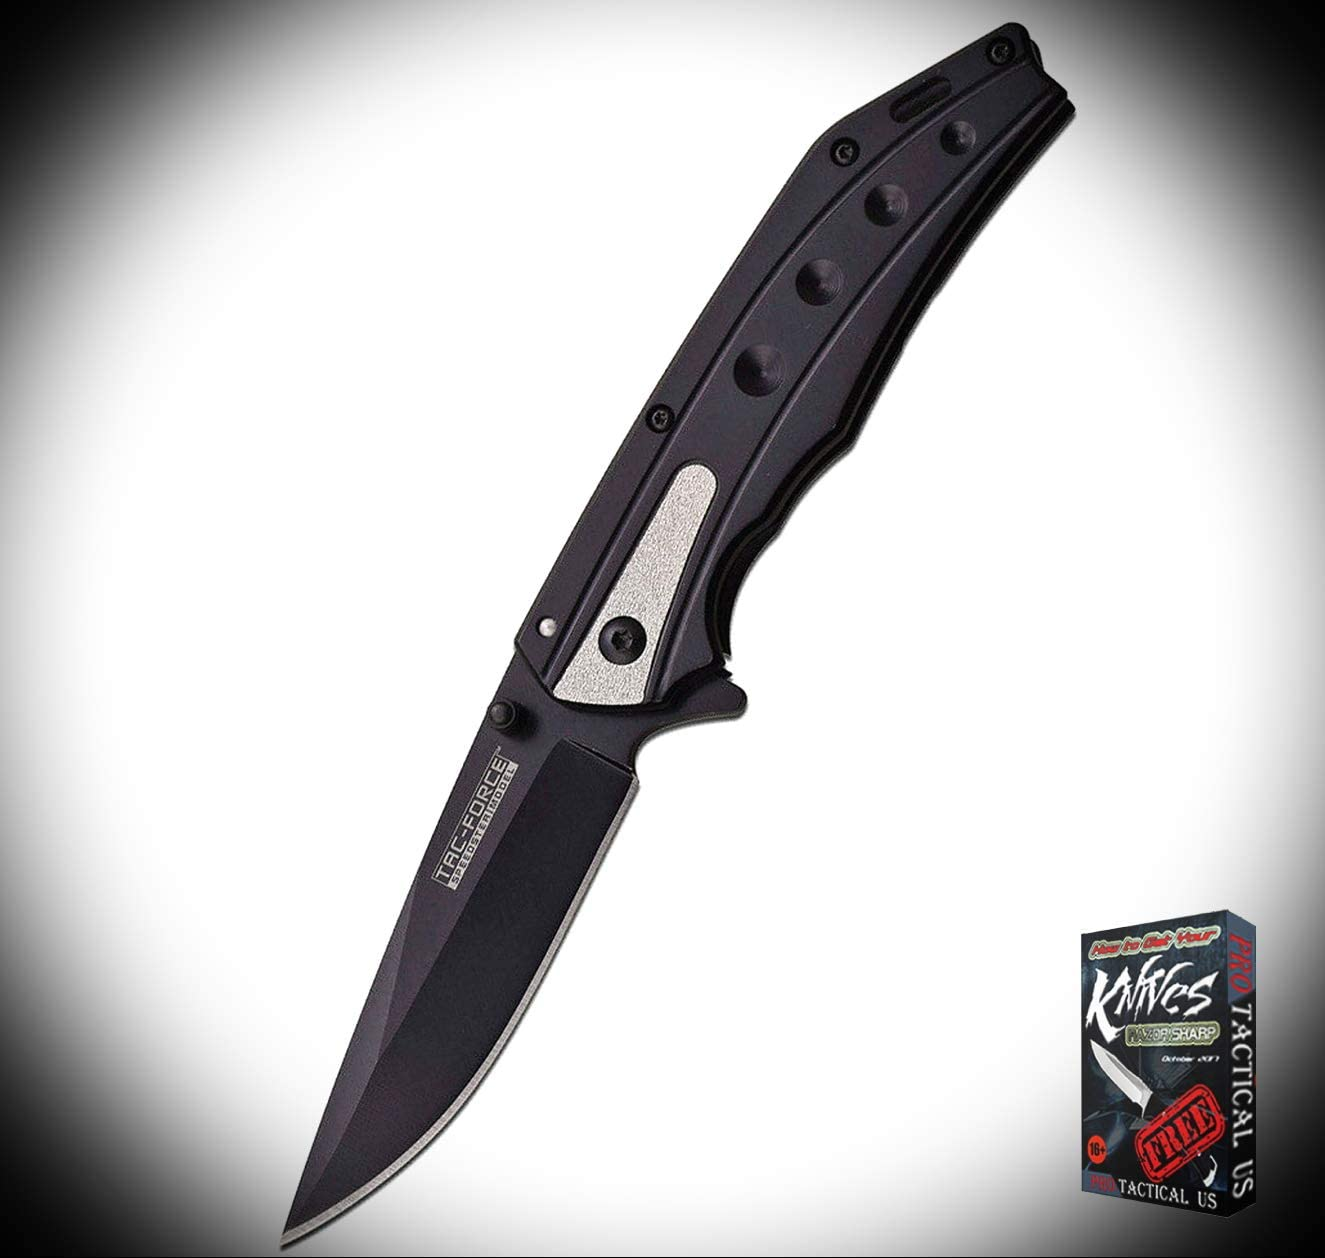 New Tac Force Framelock Stainless Black Finish Blade and Handle ProTactical Elite Knife BK0407RT + Free eBook